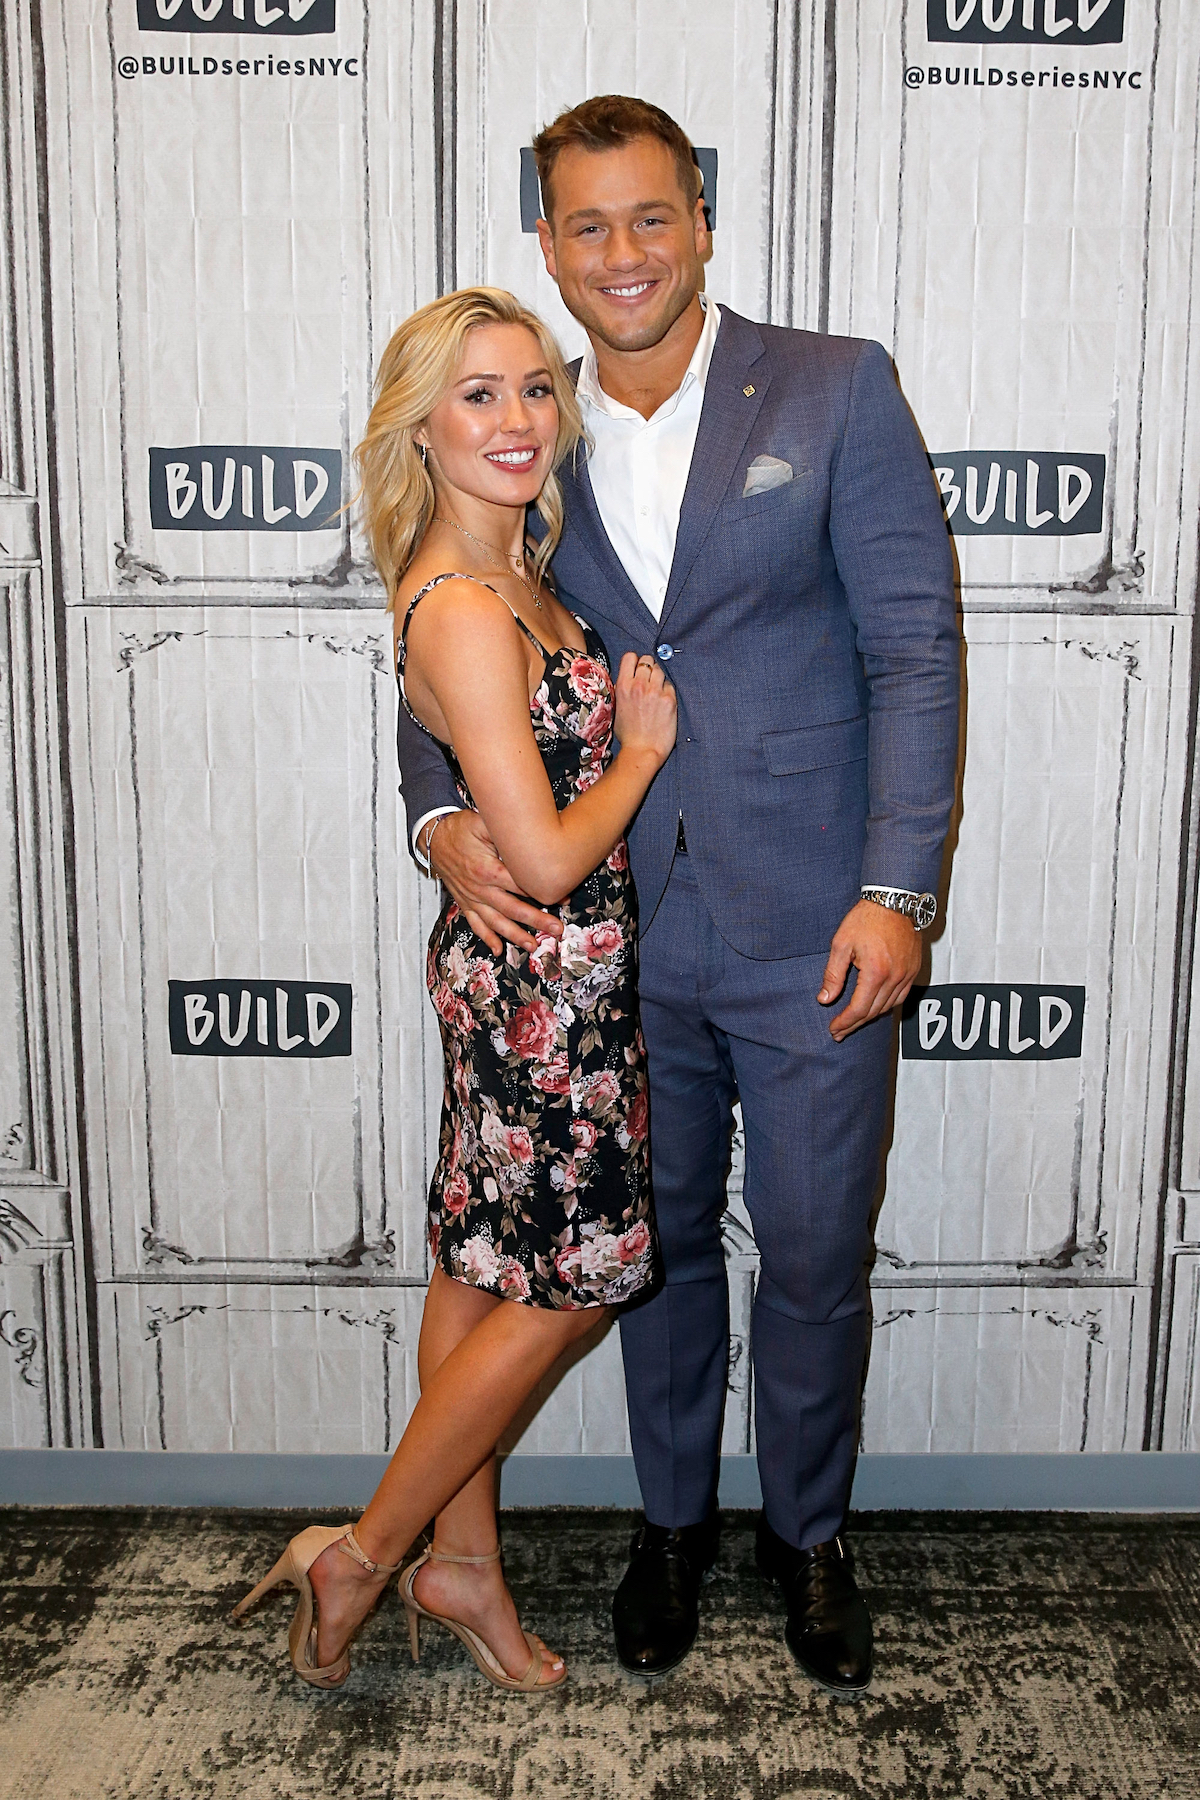 'Bachelor' Star Colton Underwood Praises Cassie Randolph - Cassie Randolph and Colton Underwood attend the Build Series to discuss 'The Bachelor' at Build Studio on March 13, 2019, in New York City.